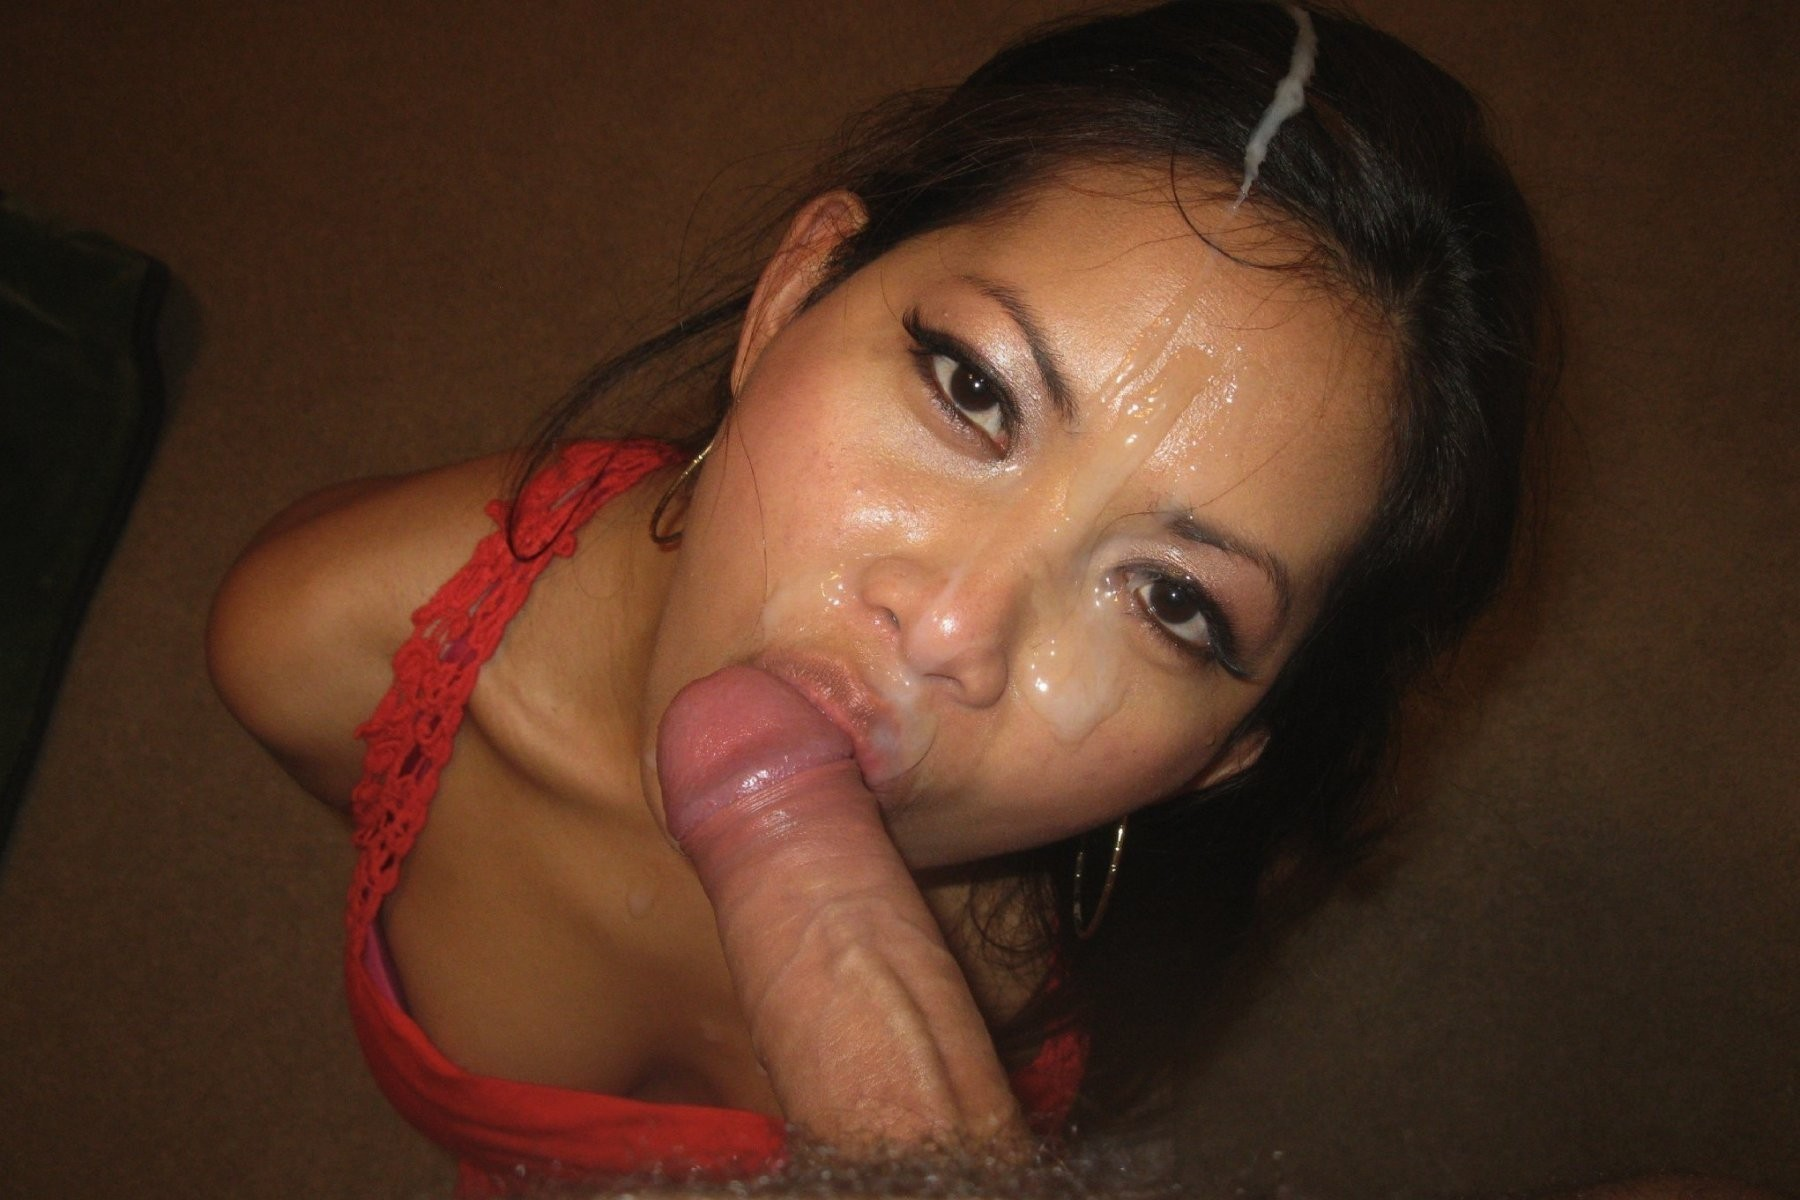 Free asian amateur blowjob video — photo 8